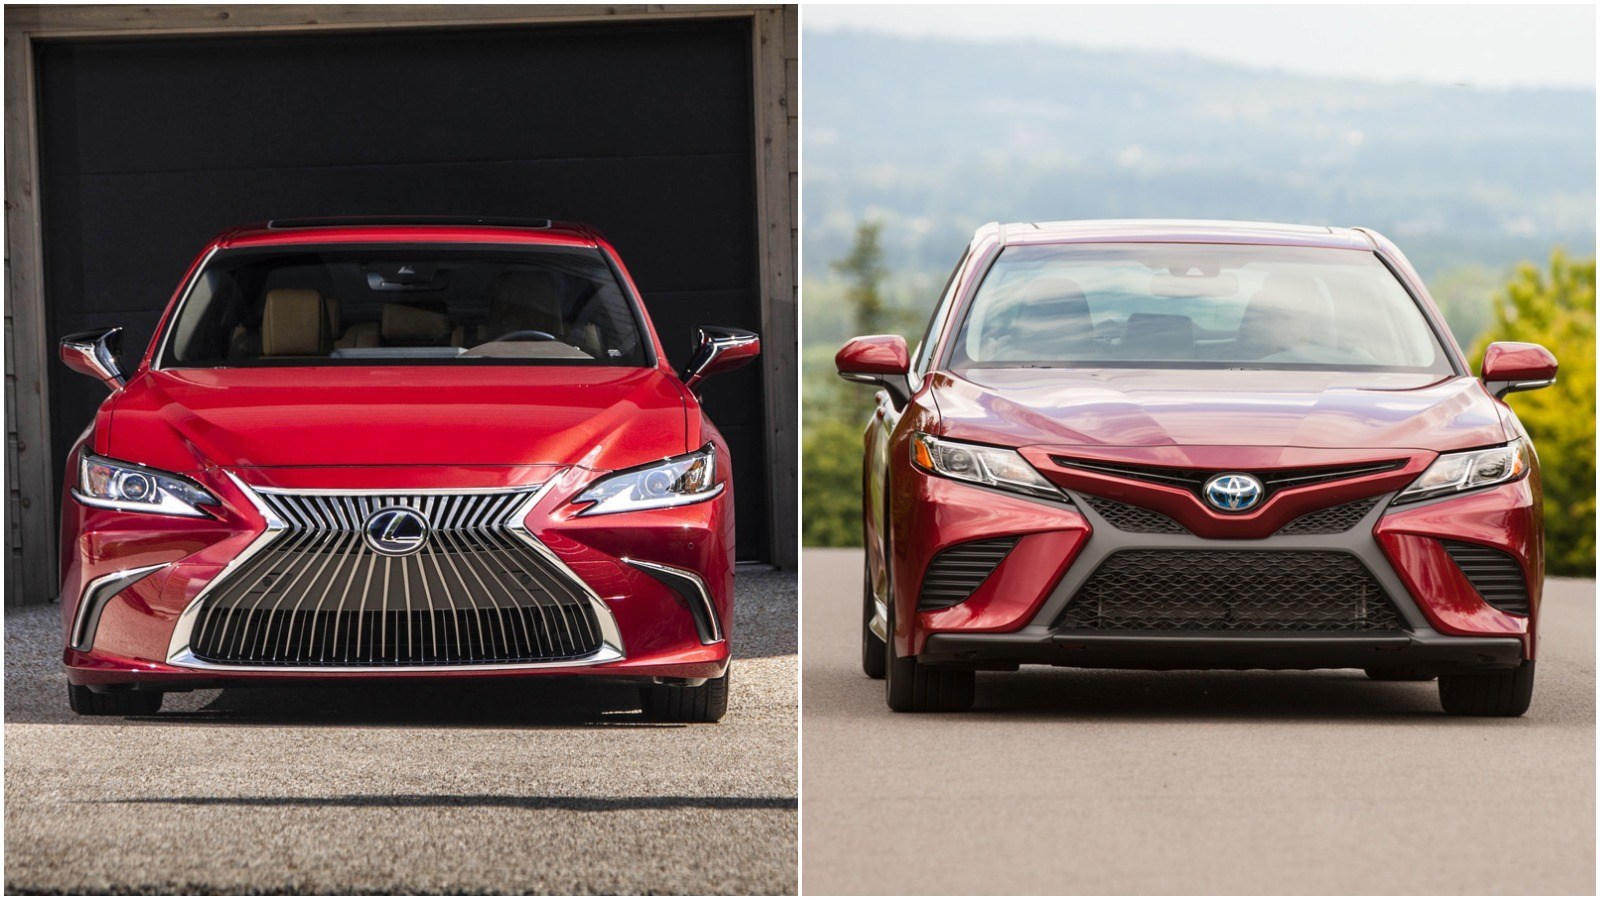 2020 Lexus ES Hybrid vs. 2020 Toyota Camry Hybrid: What's the Difference?